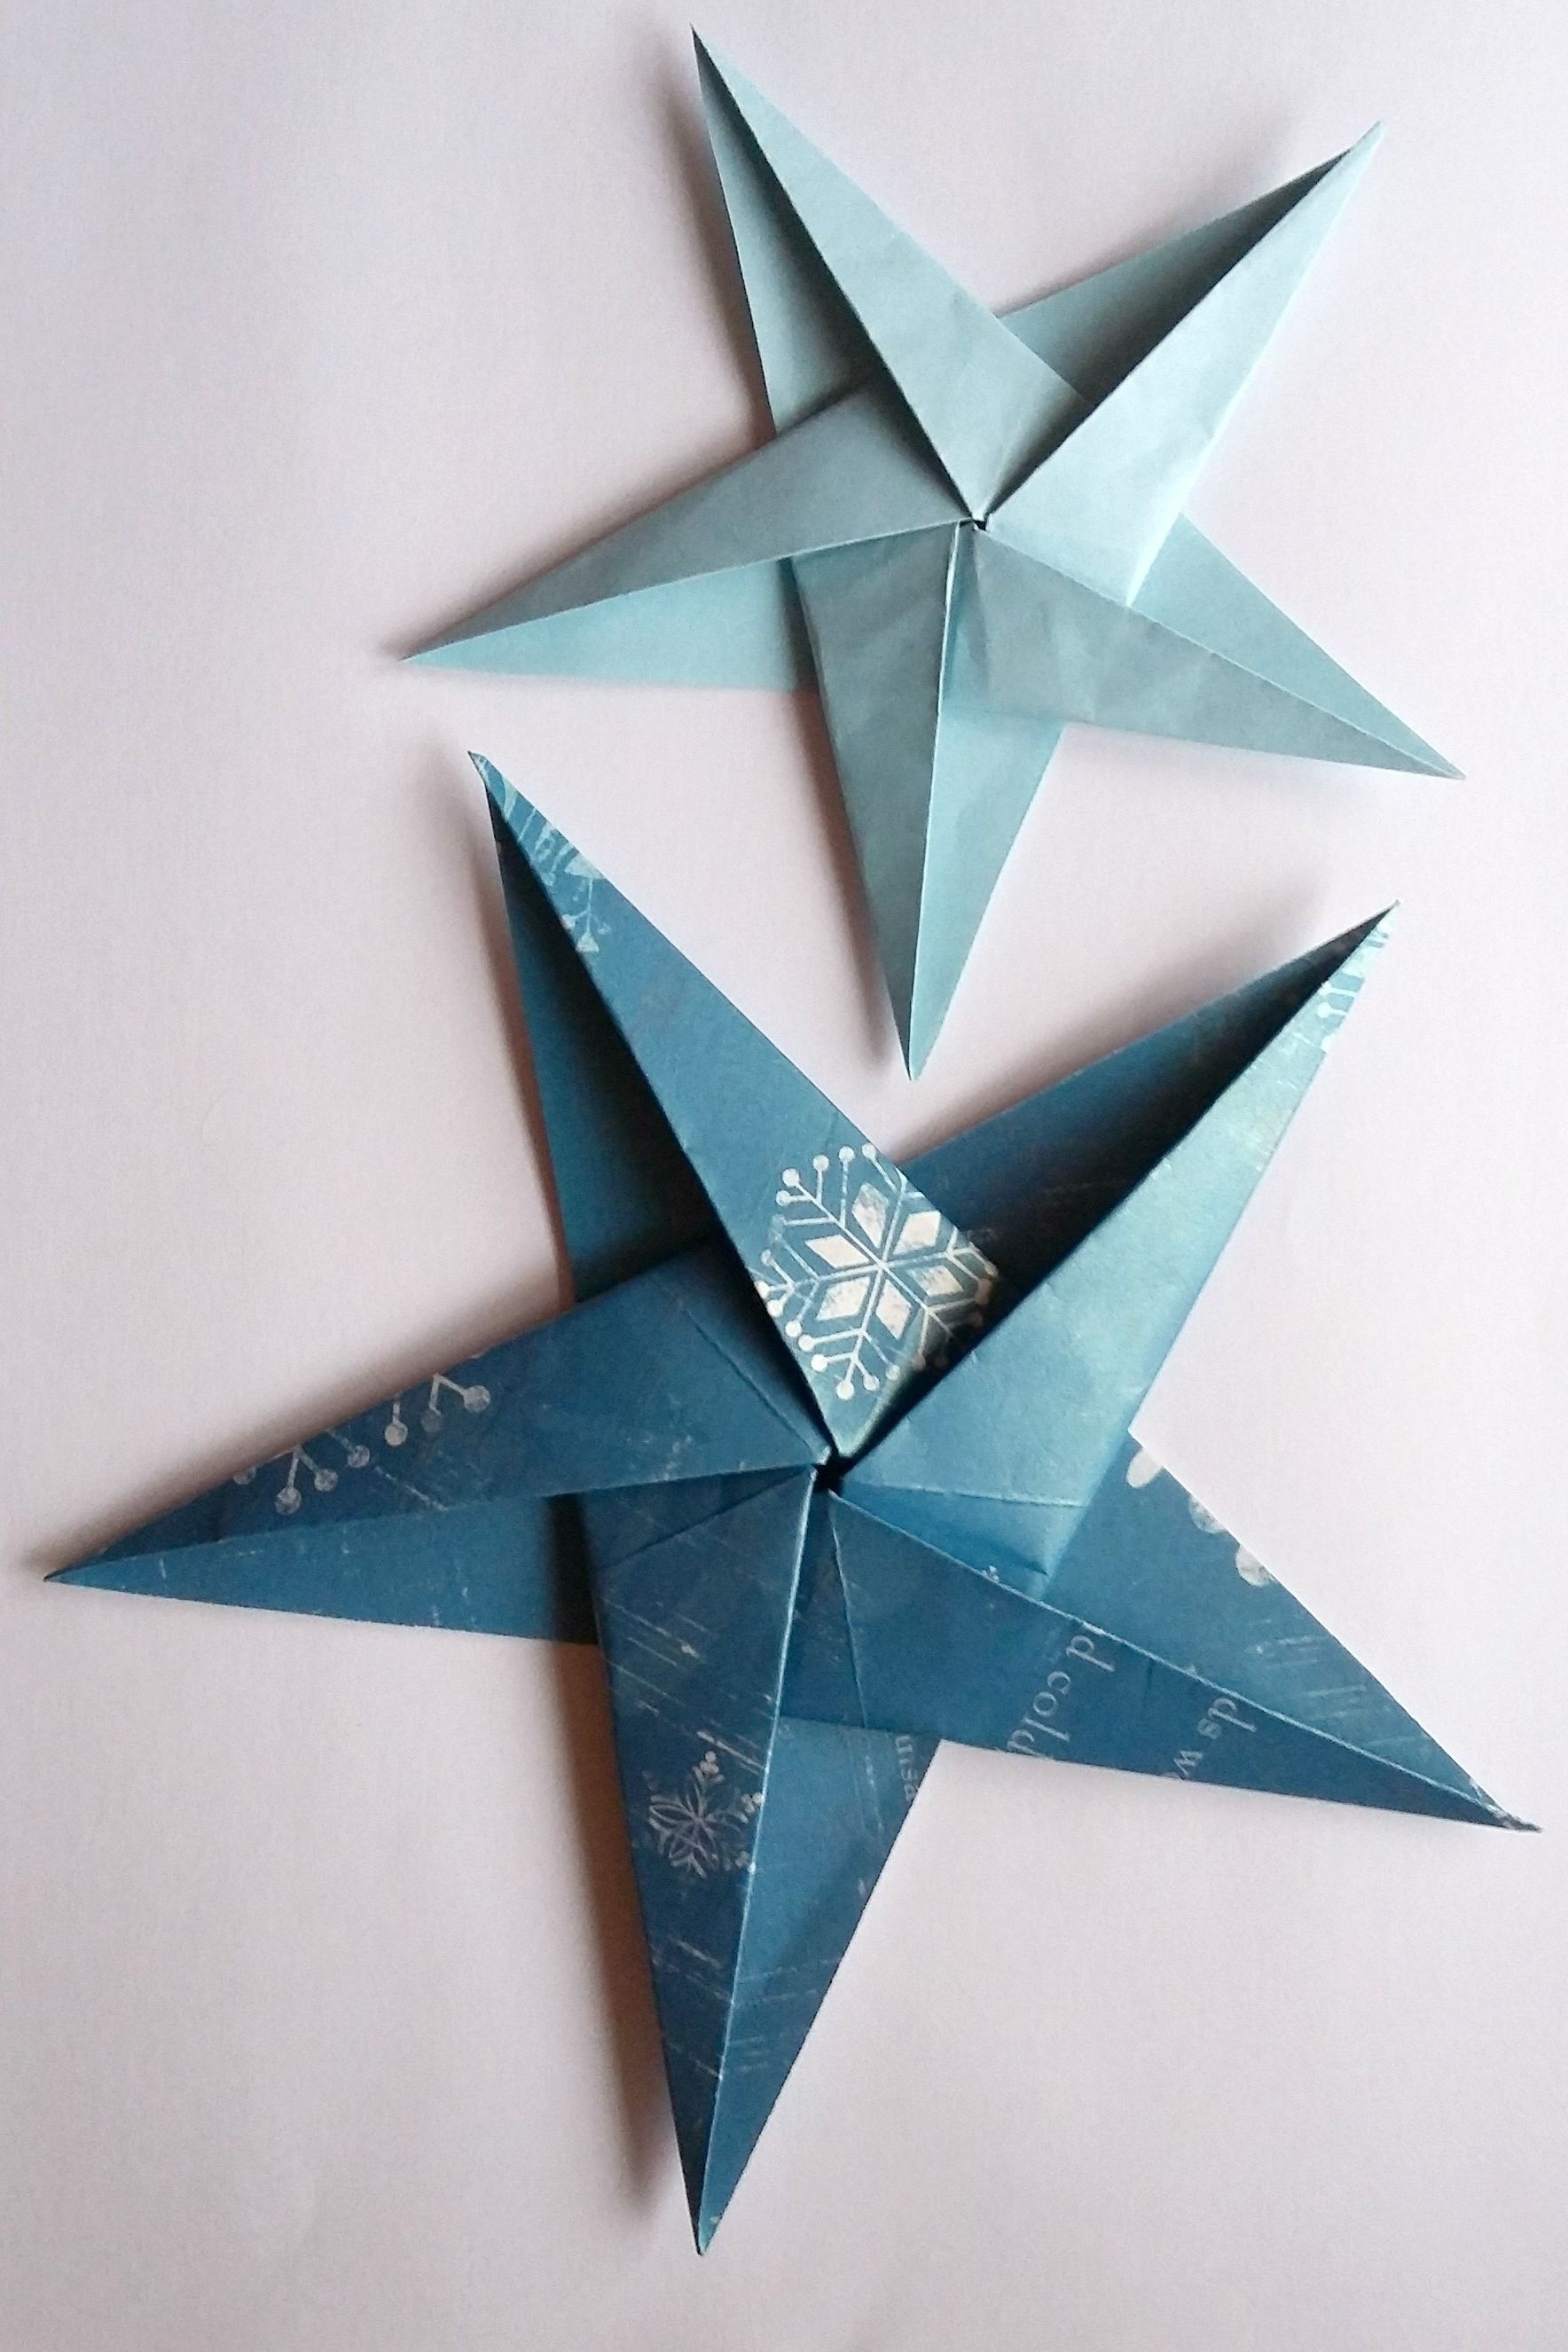 learn to make a folded paper christmas tree and an origami star simple quick and effective decorations for christmas